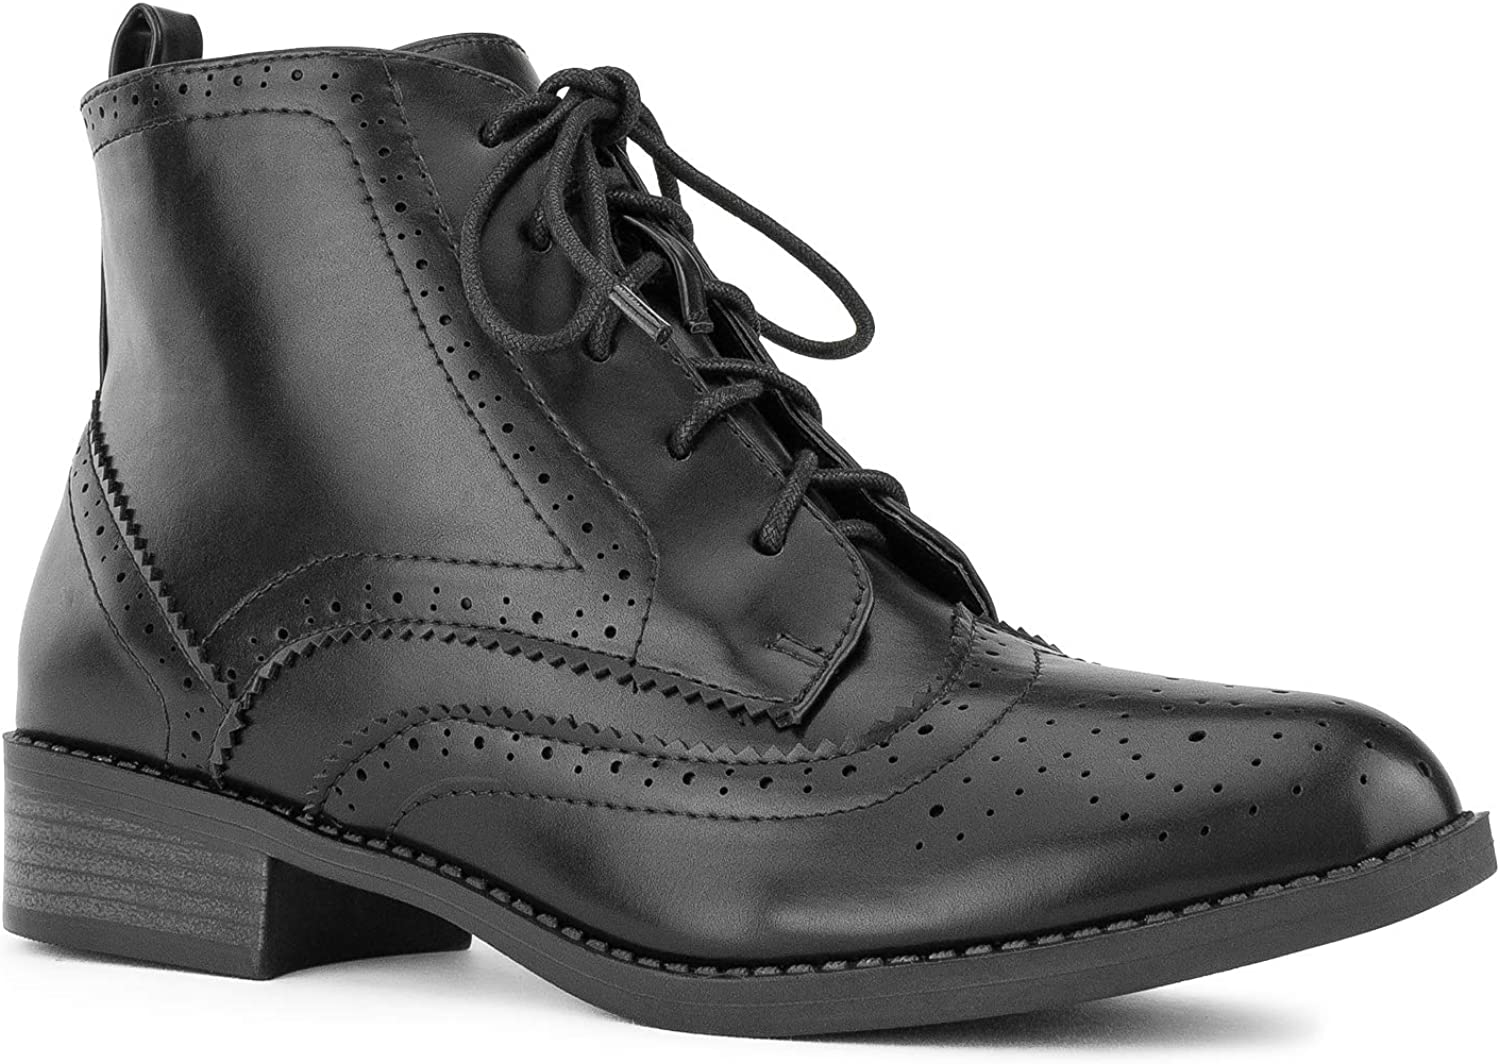 RF ROOM OF FASHION Women's Wing Tip Saddle Lace up Oxford Flats Ankle Boots Black